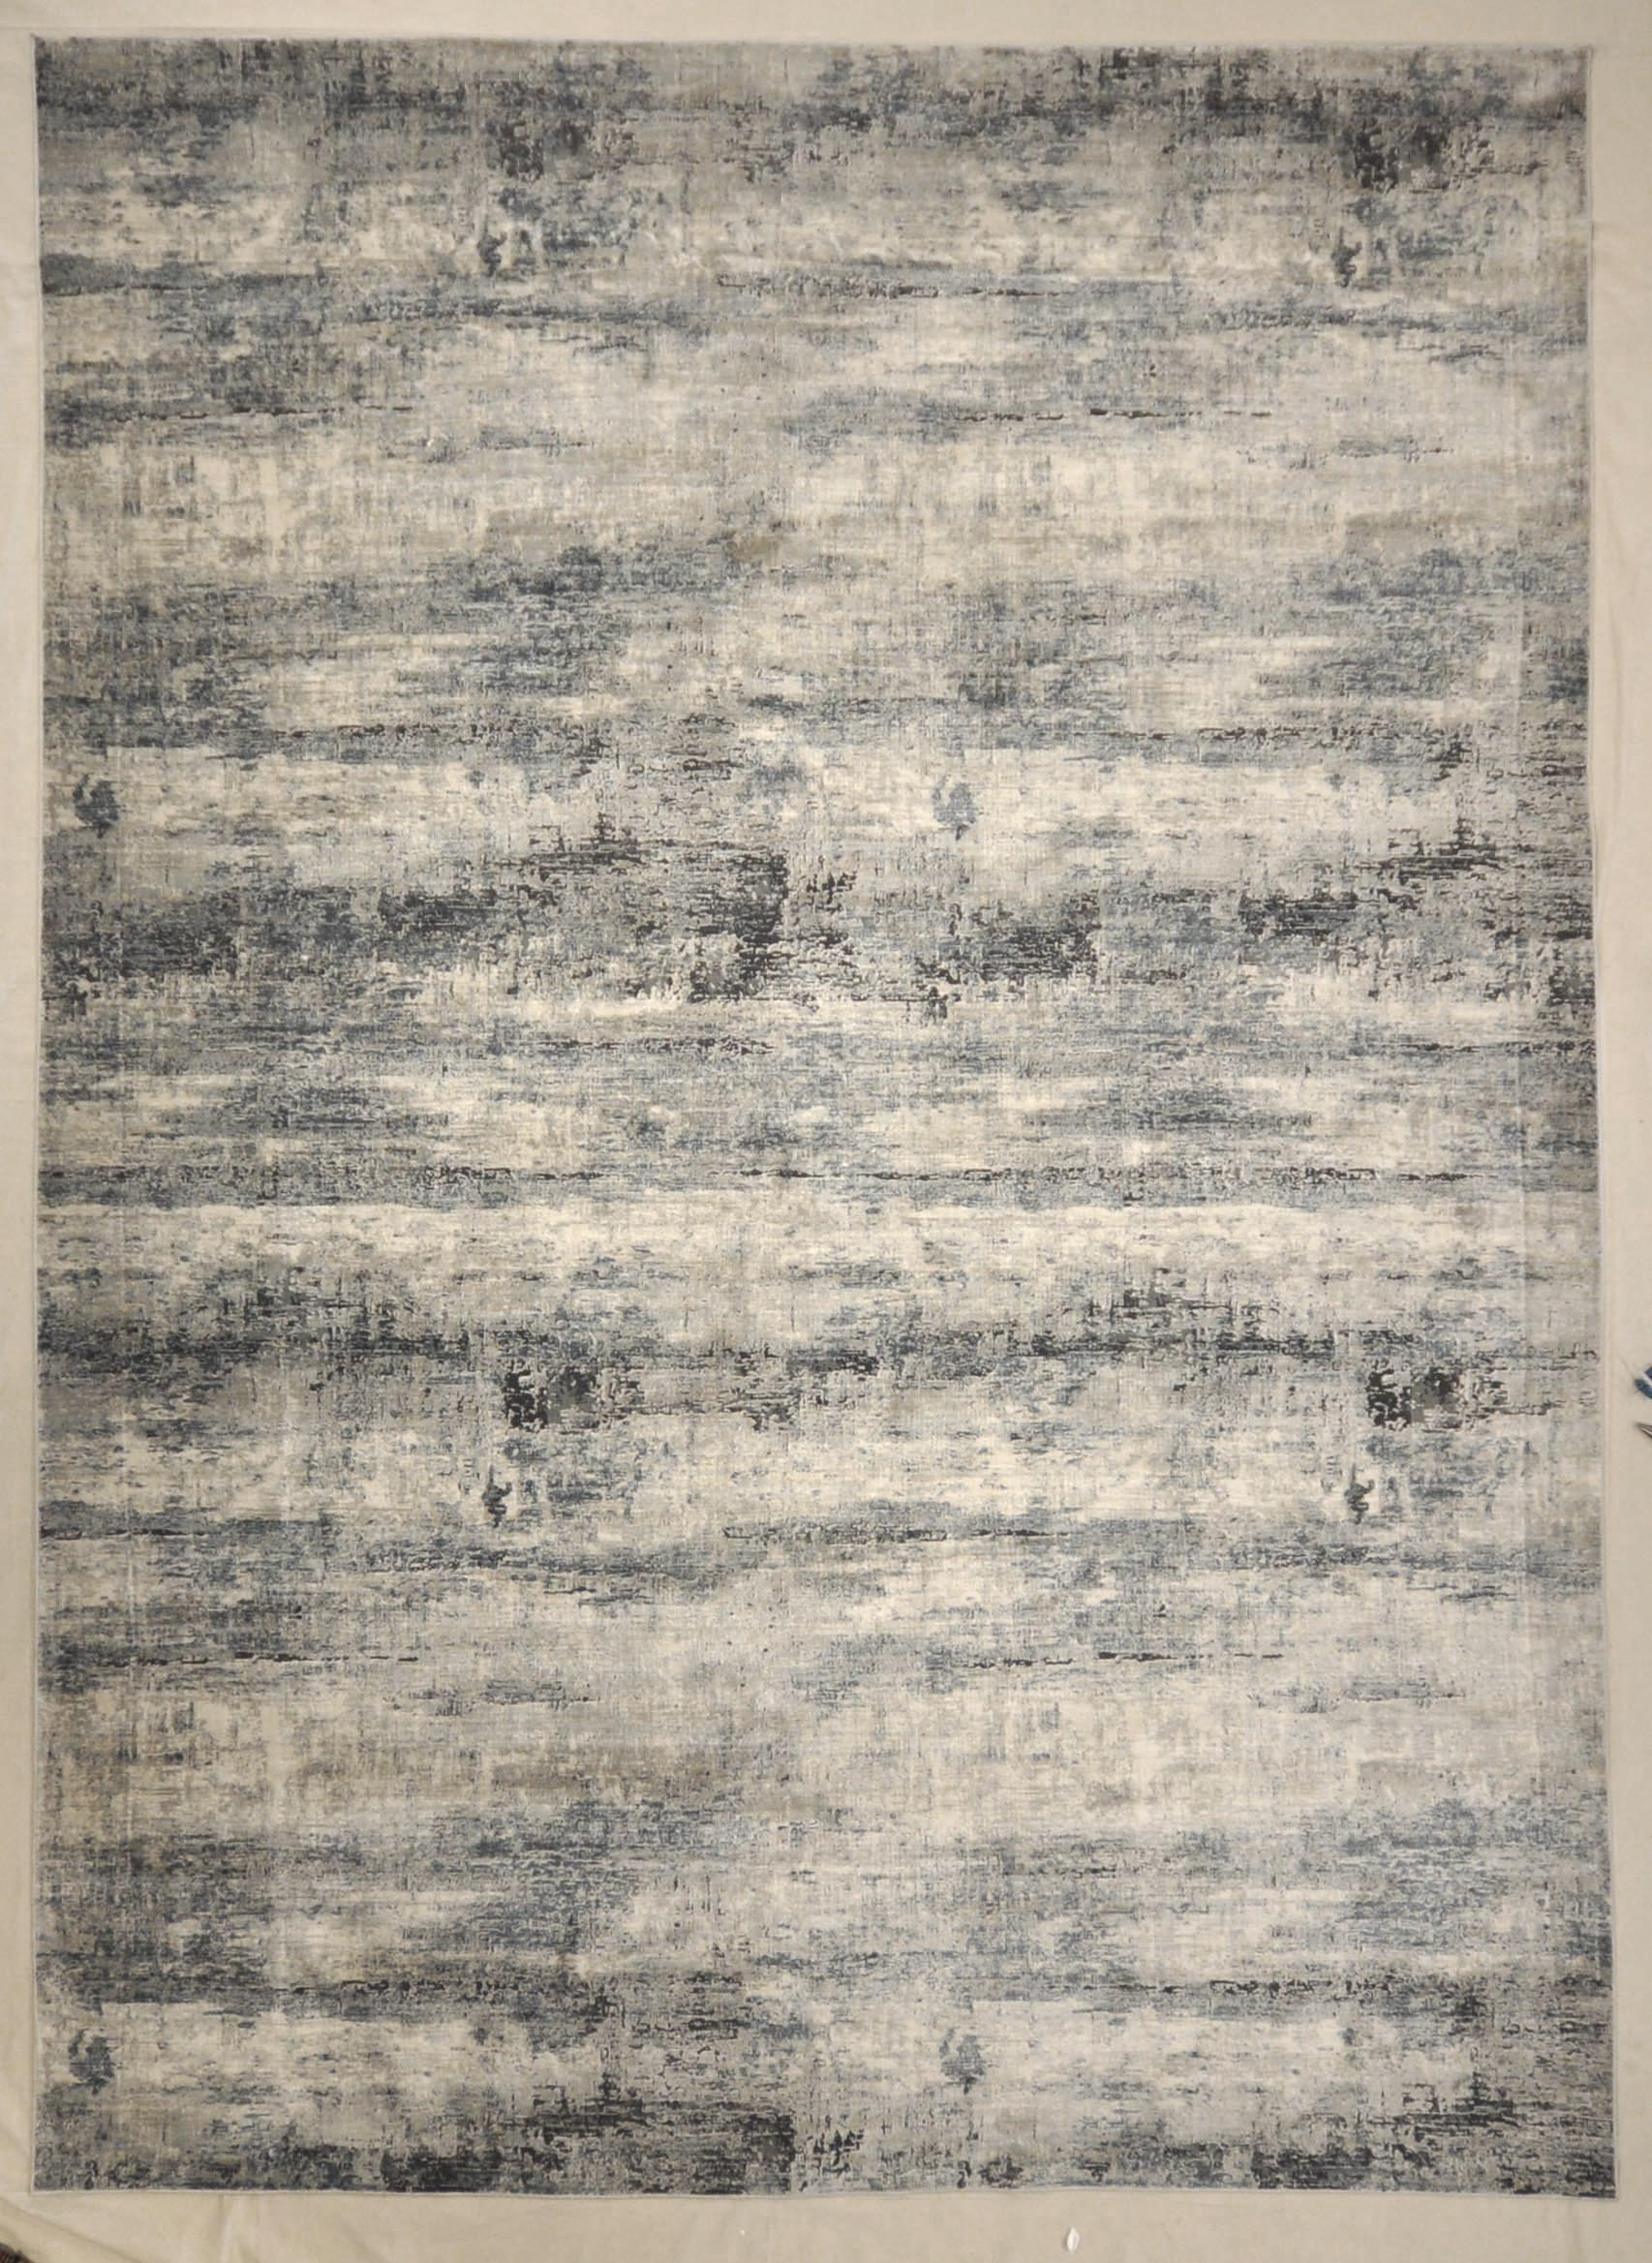 Modern Ocean Grey Rug | Rugs and More | Santa Barbara Design Center 33004